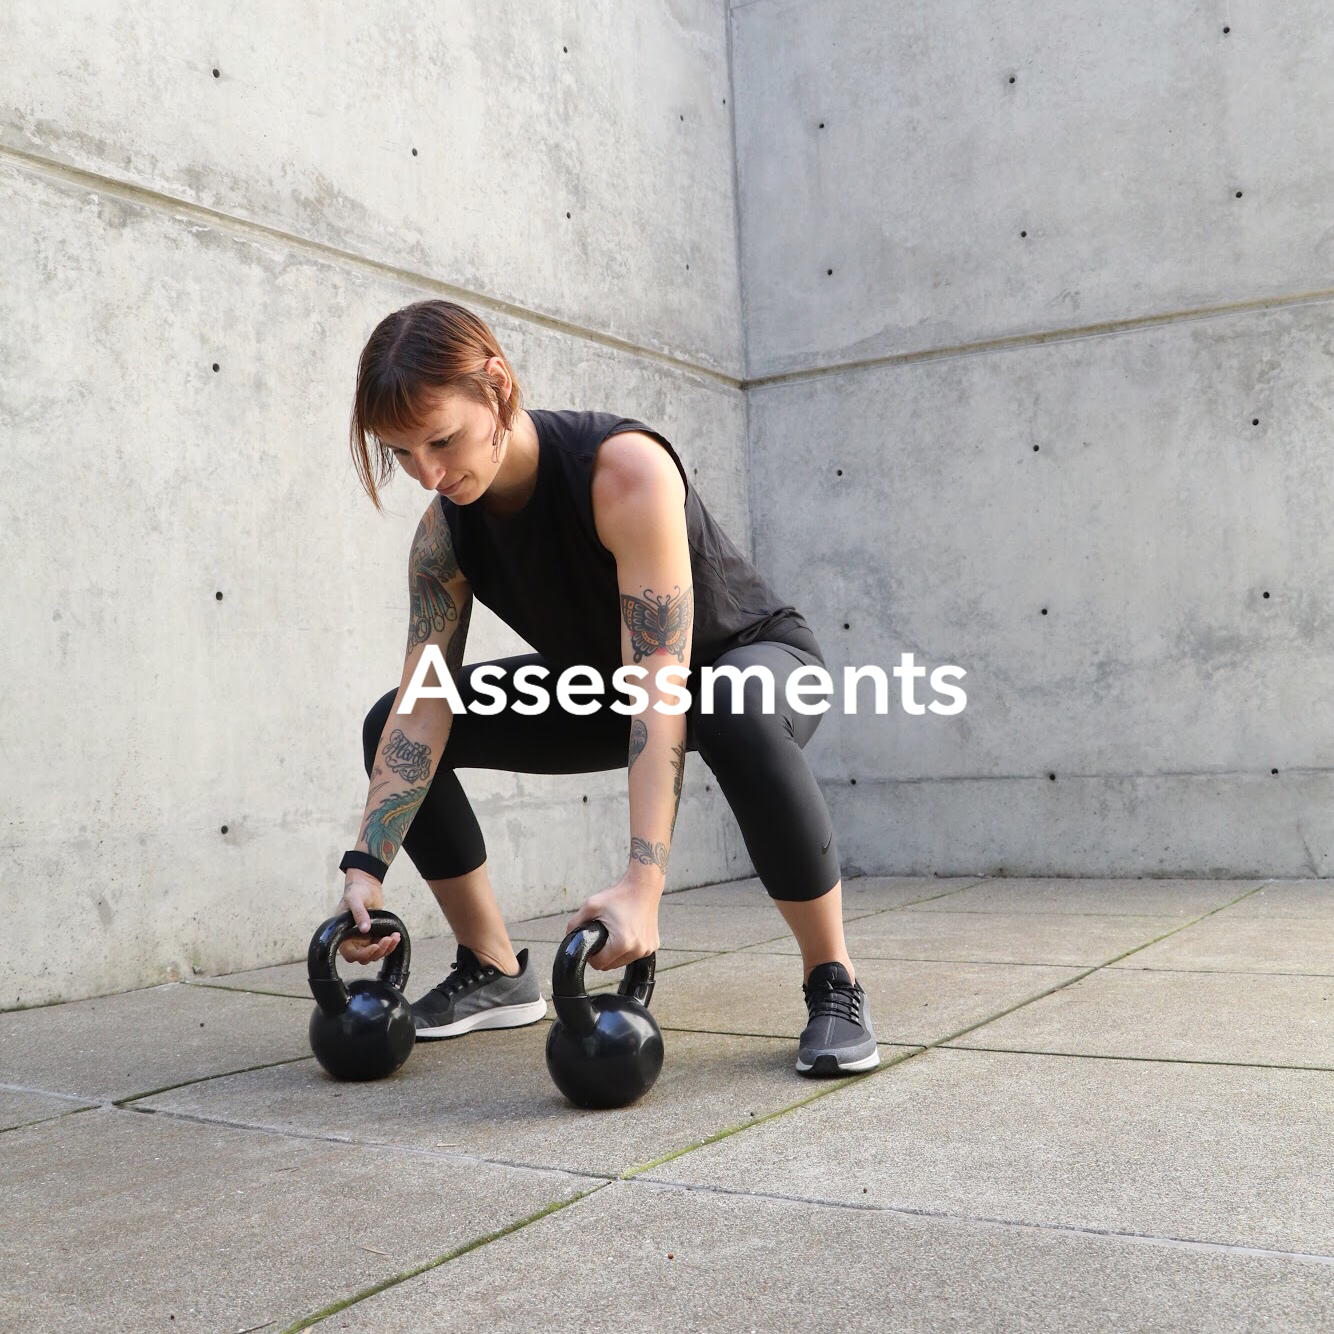 hiring-a-personal-trainer-assessments.JPG